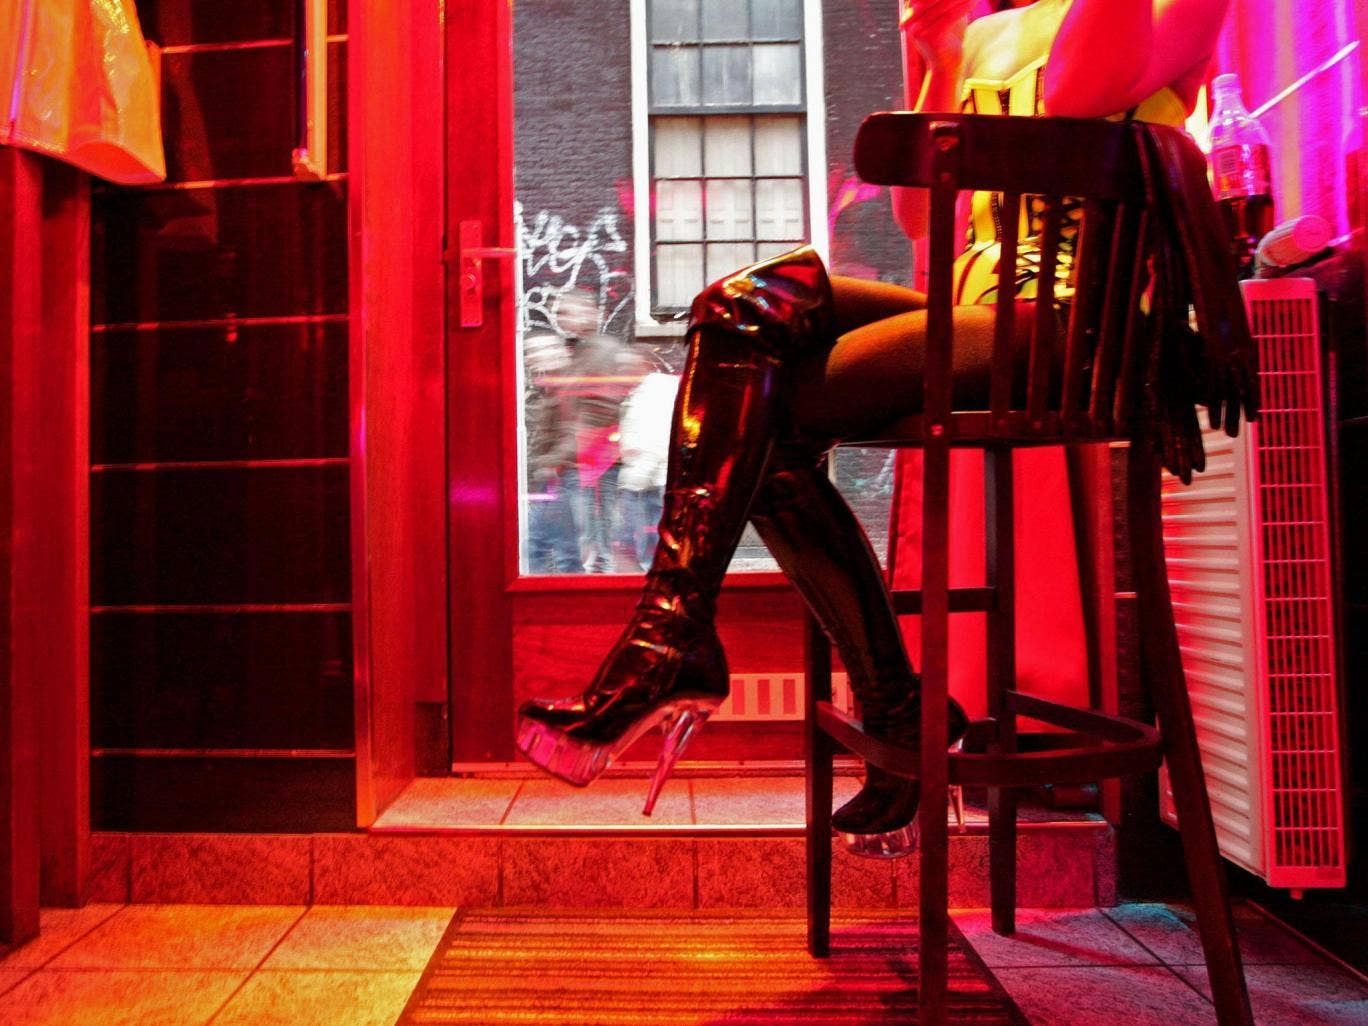 A sex worker in a red-light district.